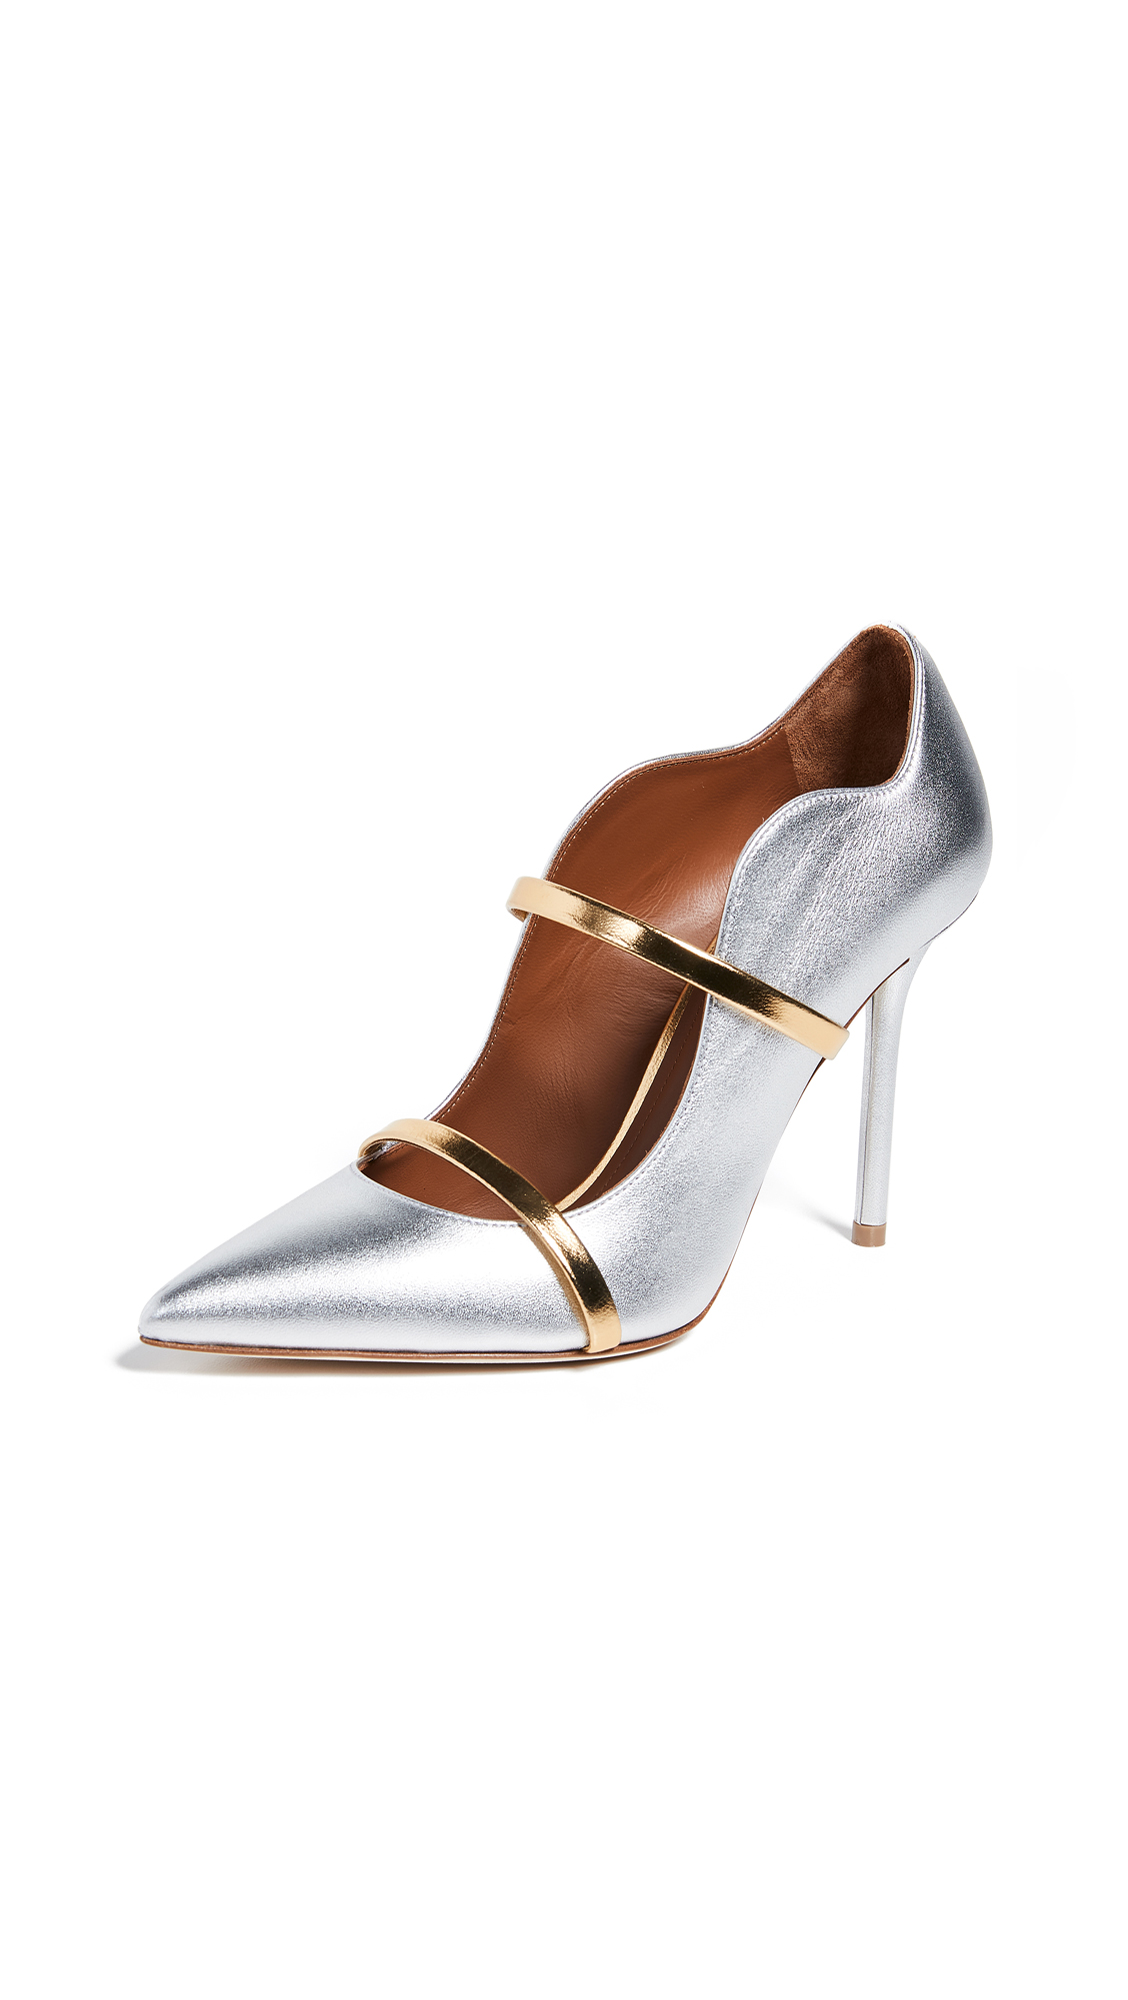 Malone Souliers Maureen Pumps - Silver/Gold